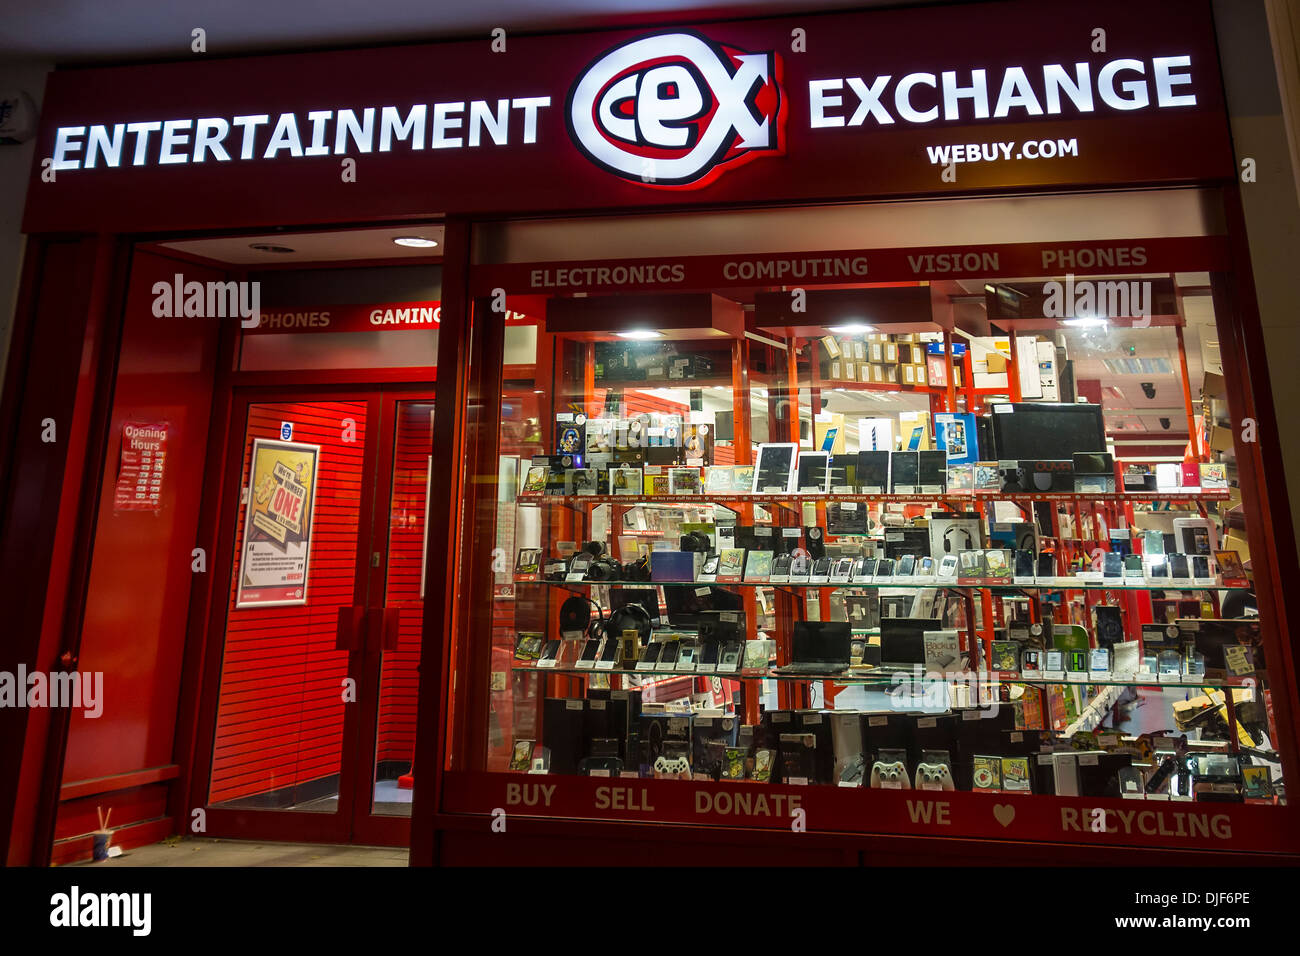 Entertainment Exchange CEX webuy.com Stock Photo: 63029526 - Alamy